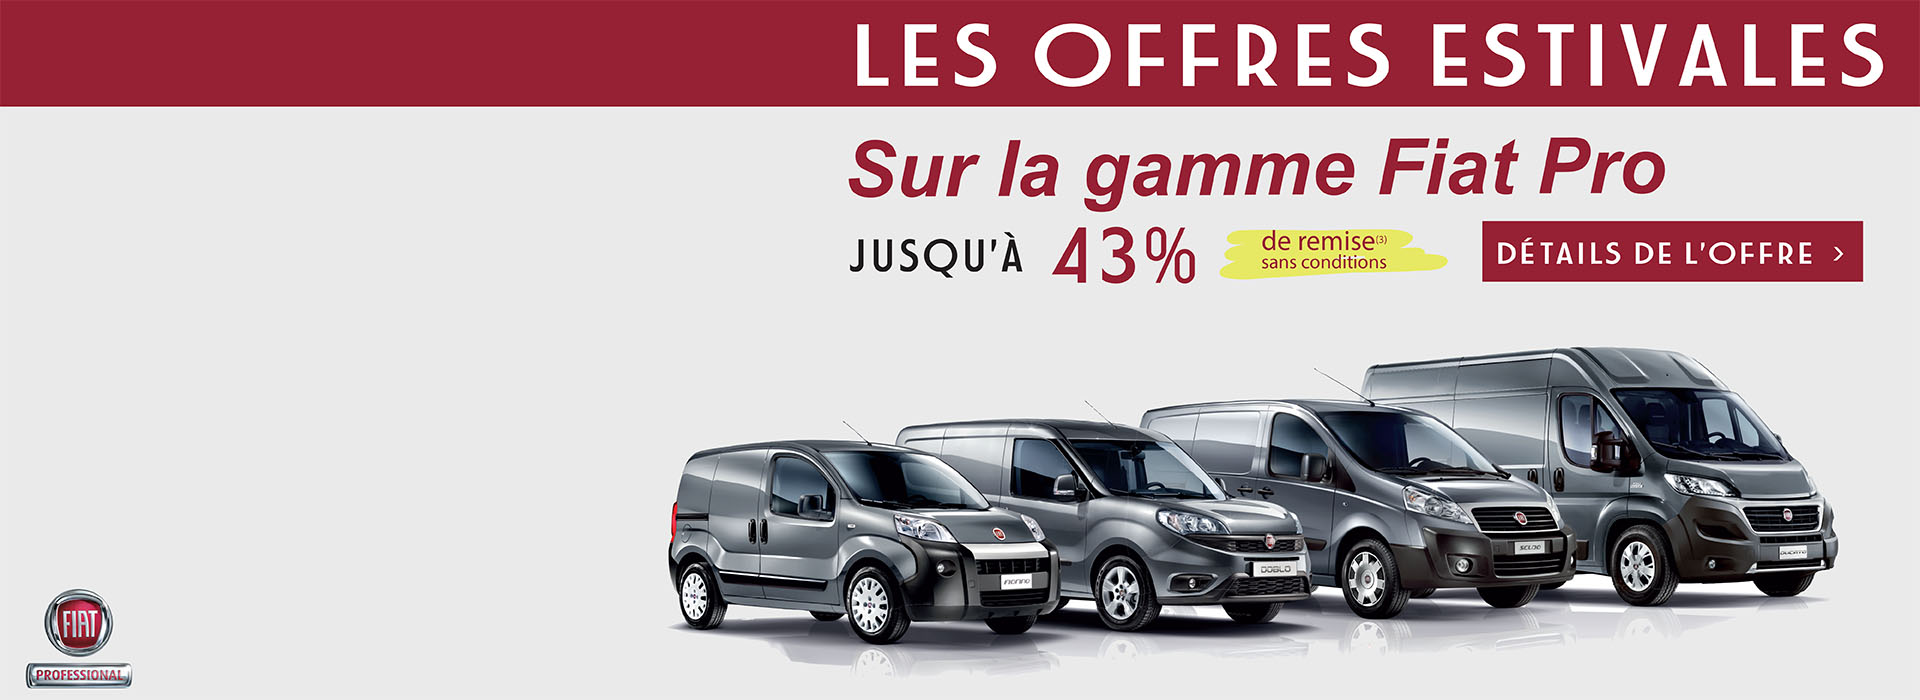 promotion gamme fiat pro